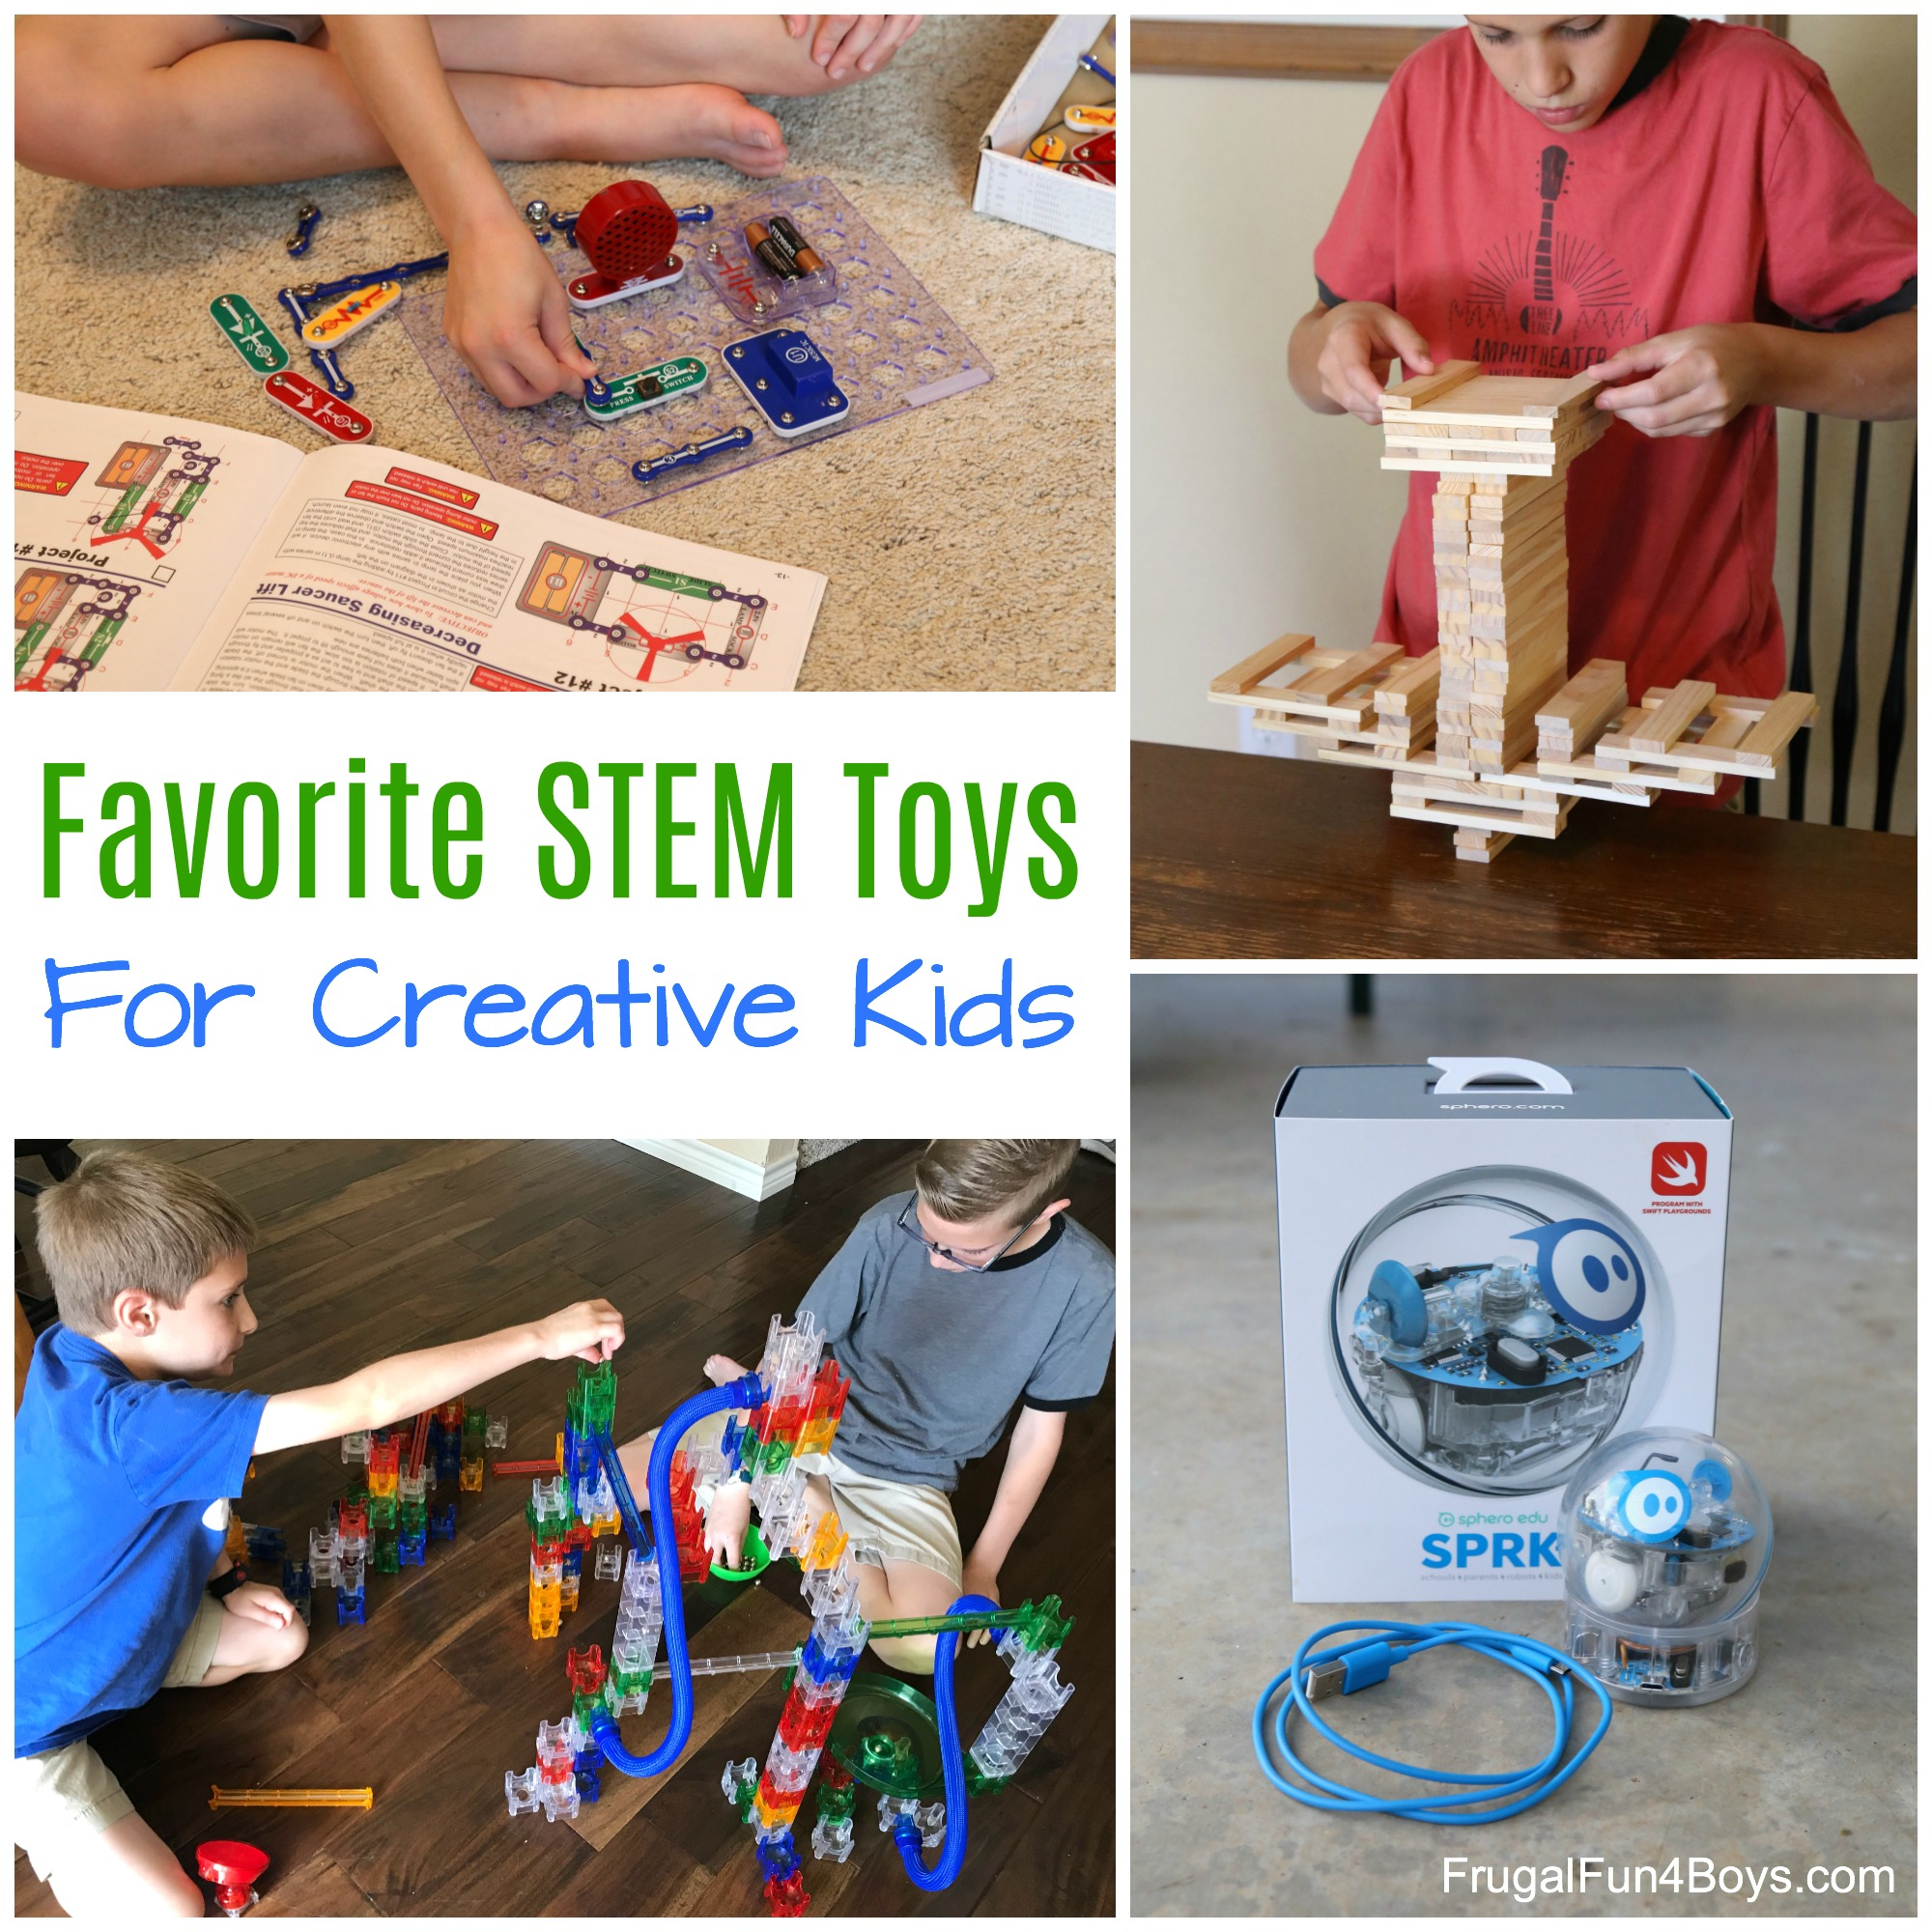 Favorite Stem Toys For Creative Kids Frugal Fun Boys And Girls Projects Dough Project Ideas Play Parallel Circuit Have Building Tinkering